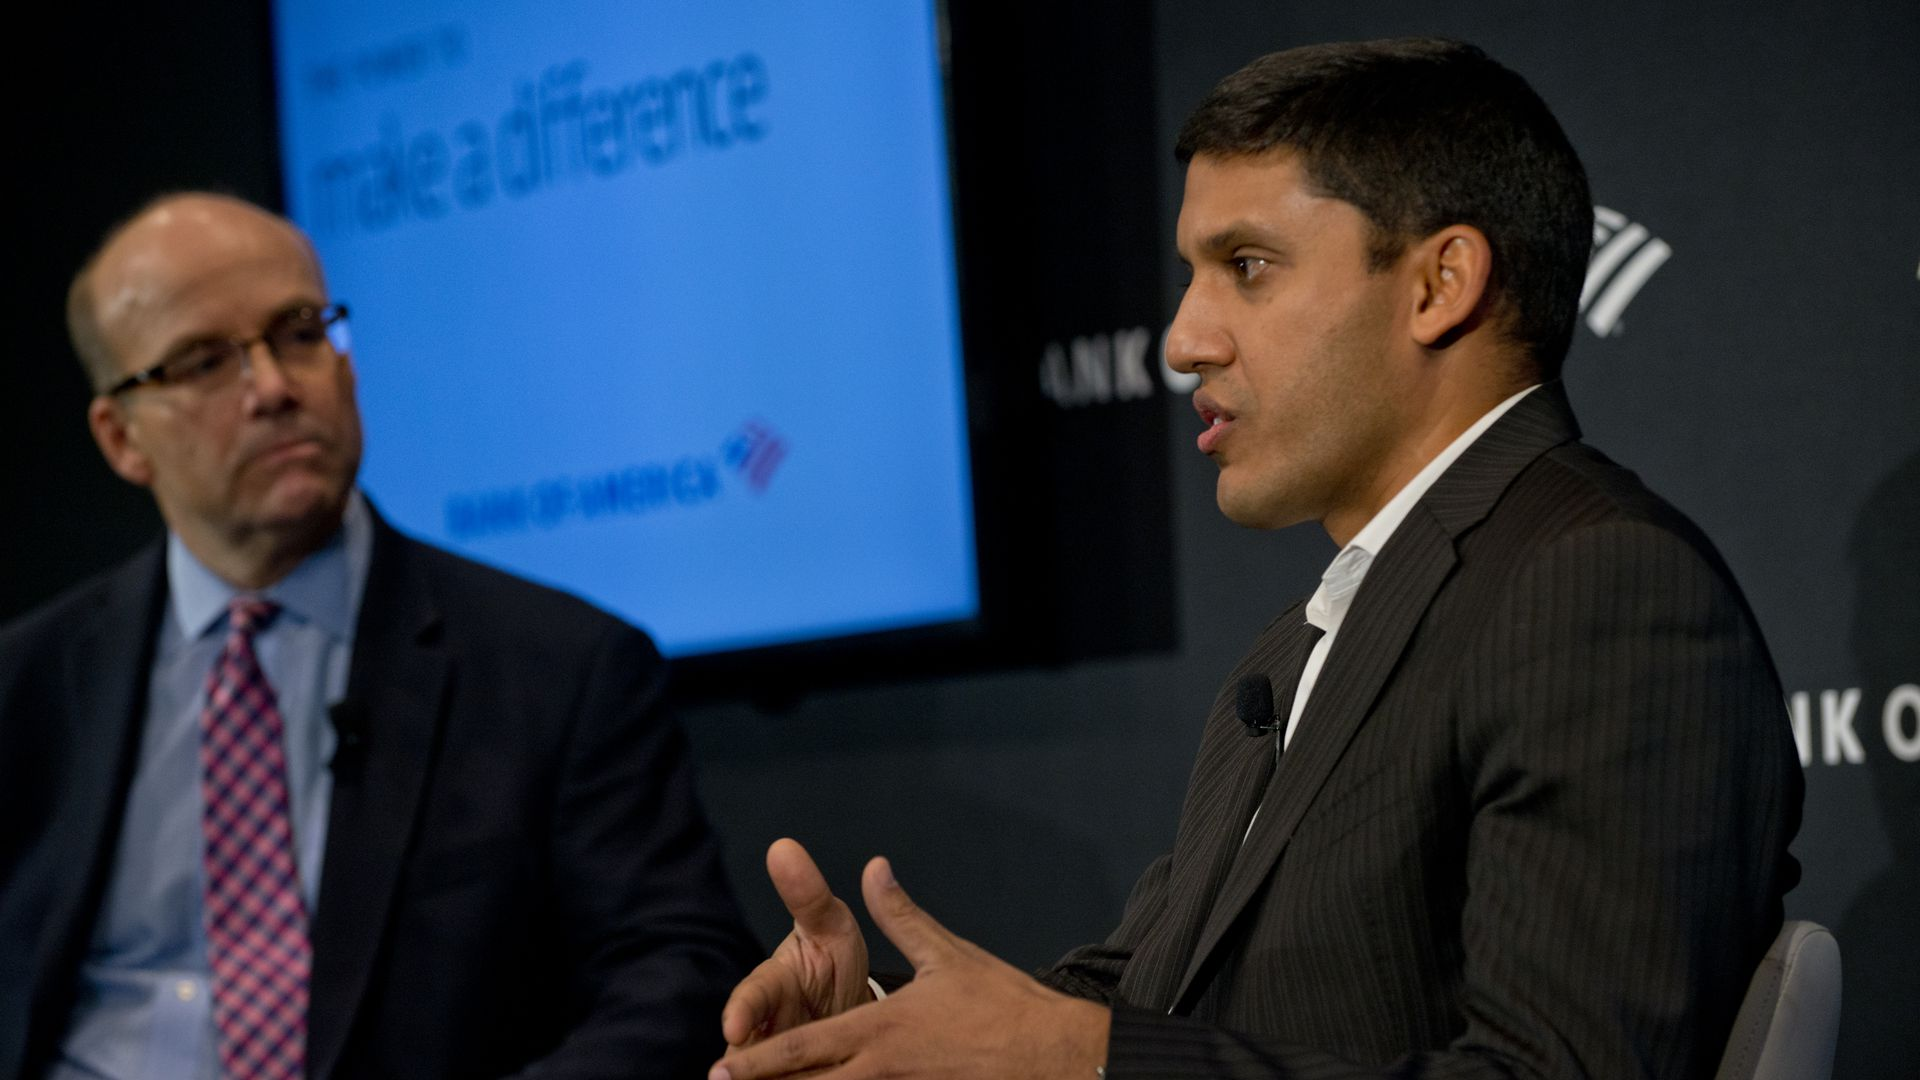 Dr. Rajiv Shah on the Axios stage